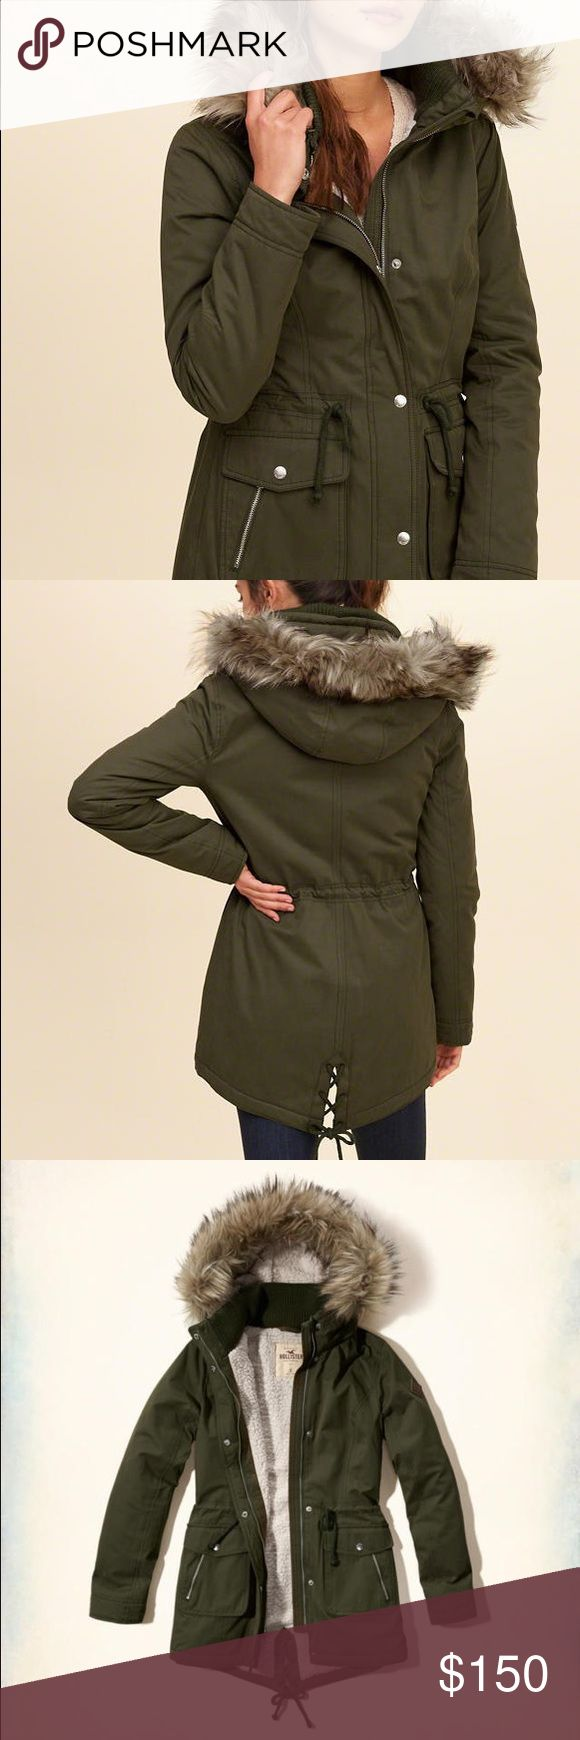 SALE❗Hollister green parka jacket Great condition! Size xsmall, fur on hood is detachable Hollister Jackets & Coats